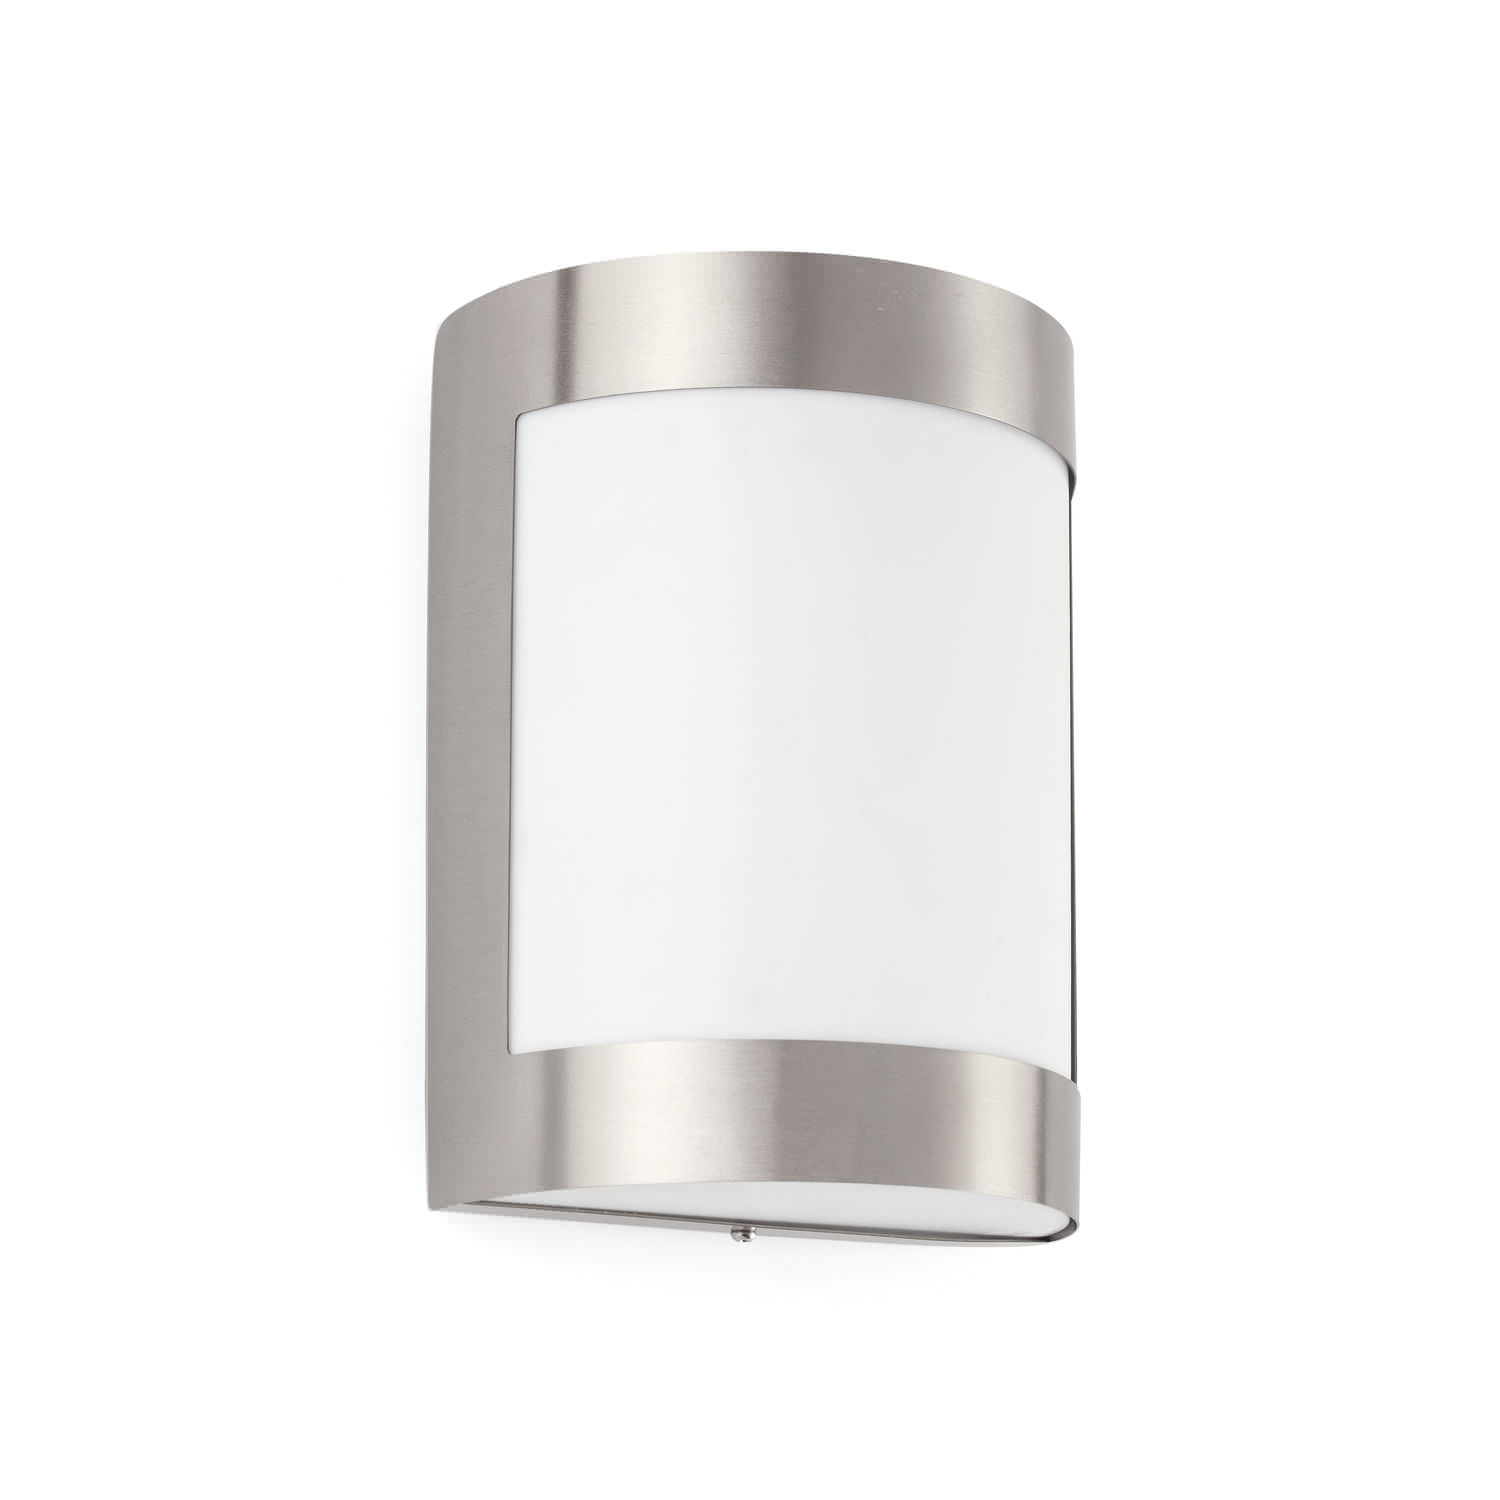 Contemporary wall light   outdoor   stainless steel   polycarbonate    CELA 1  CELA 2Contemporary wall light   outdoor   stainless steel  . Contemporary Exterior Wall Lights Uk. Home Design Ideas